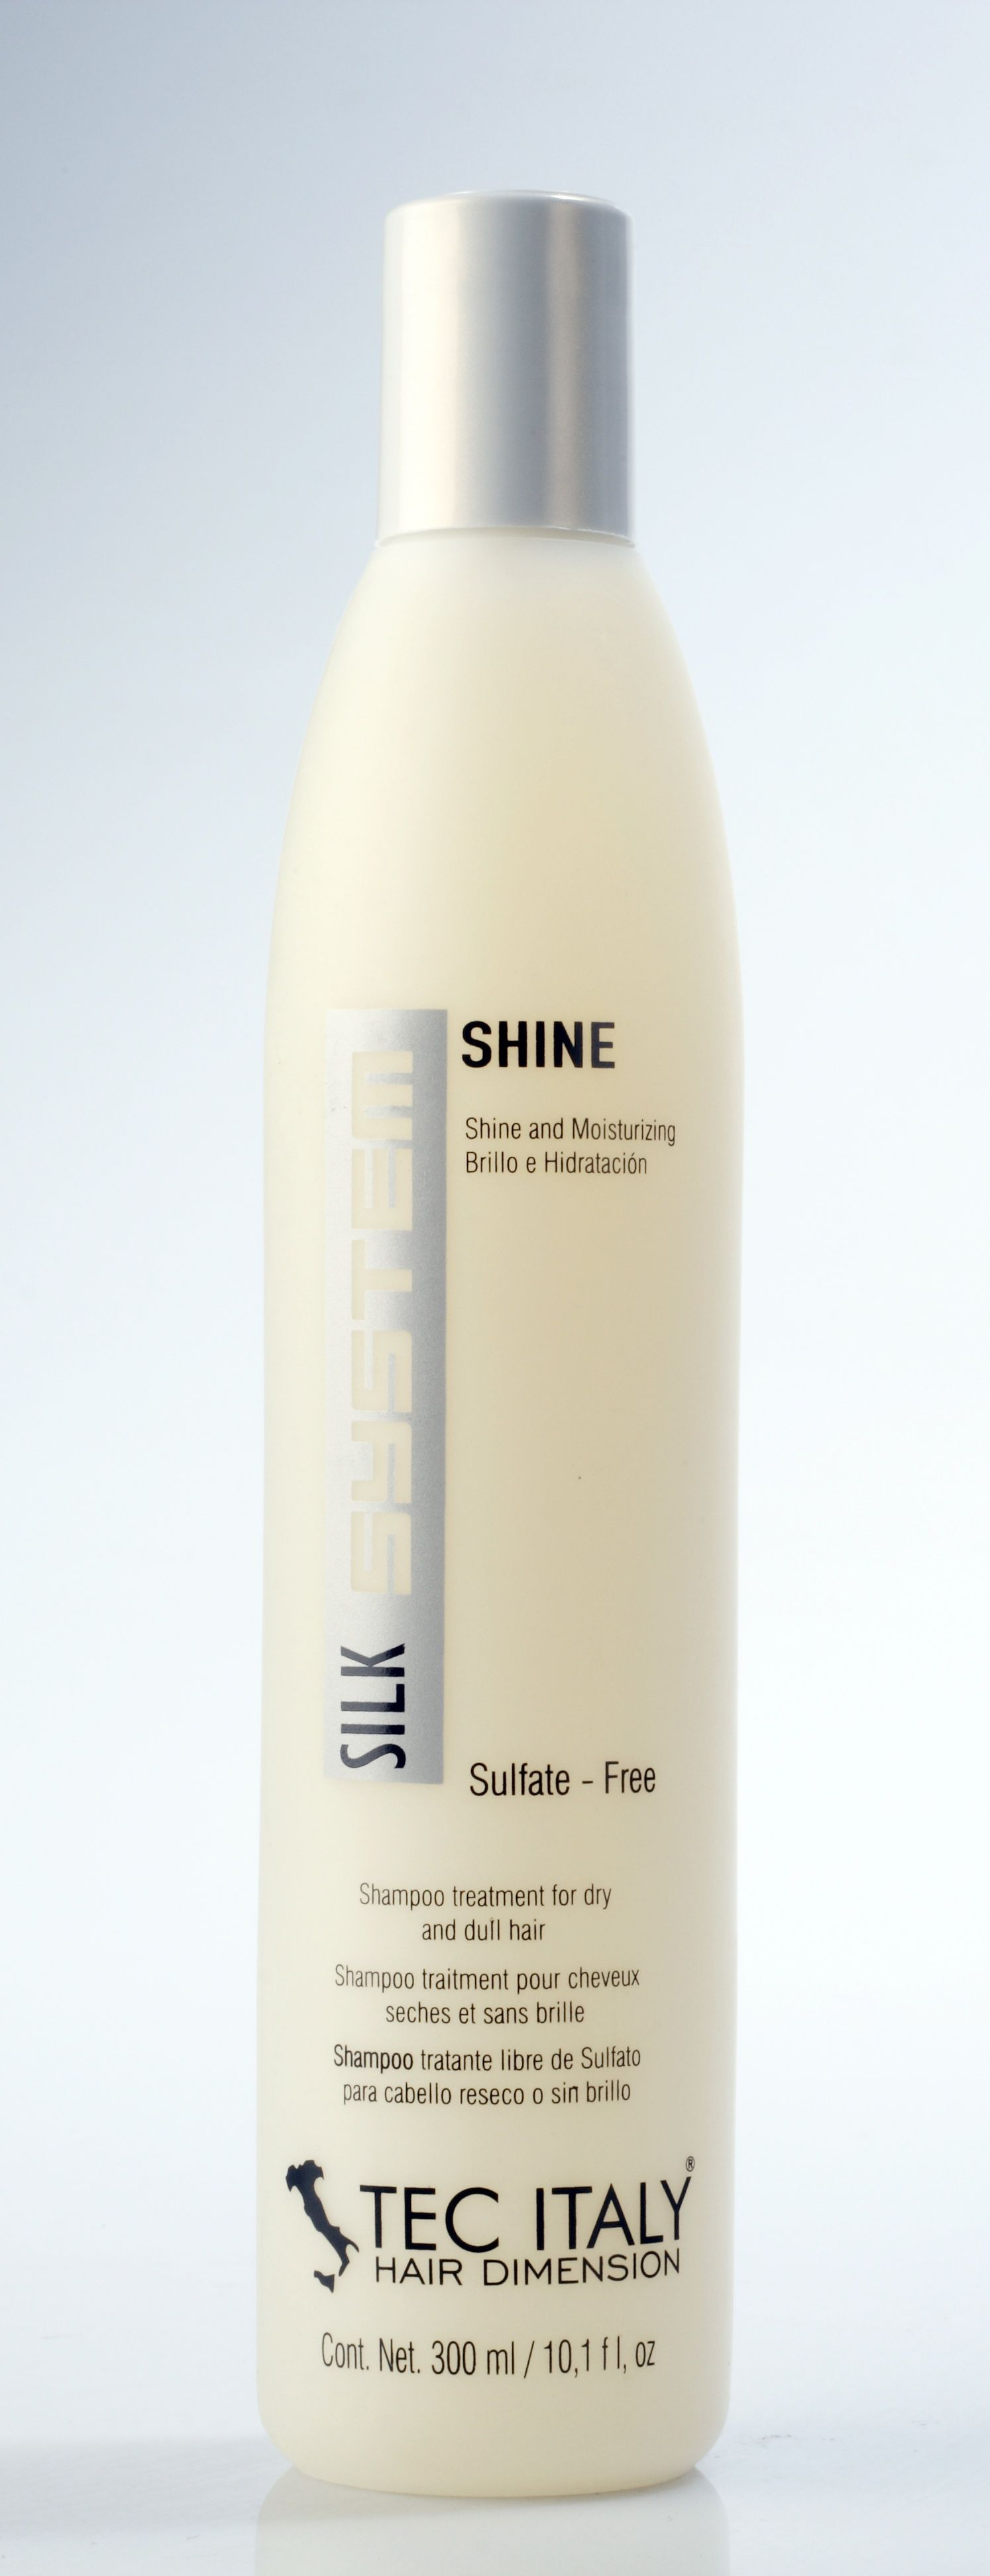 Pin on Tec Italy Silk System Shine Shampoo and Conditioner